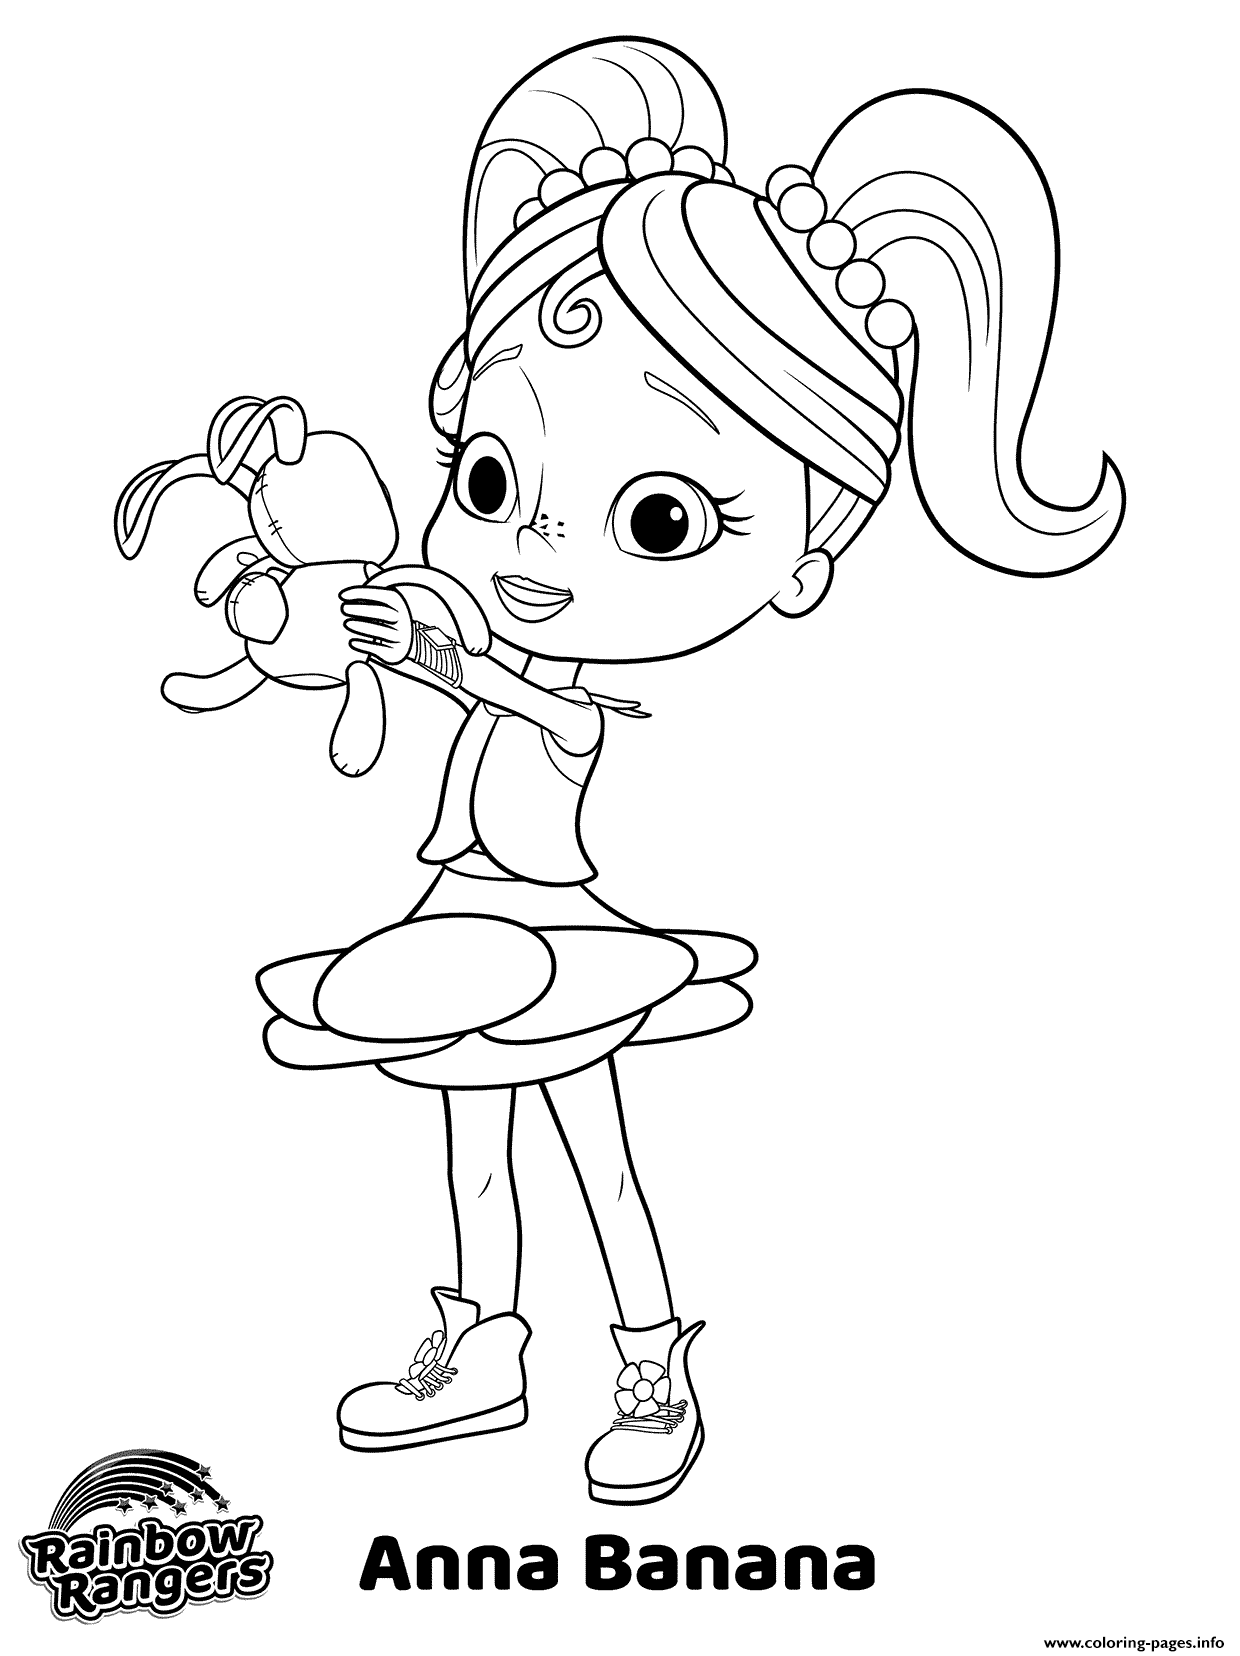 Anna Banana Nick Jr Rainbow Rangers Coloring Pages Printable